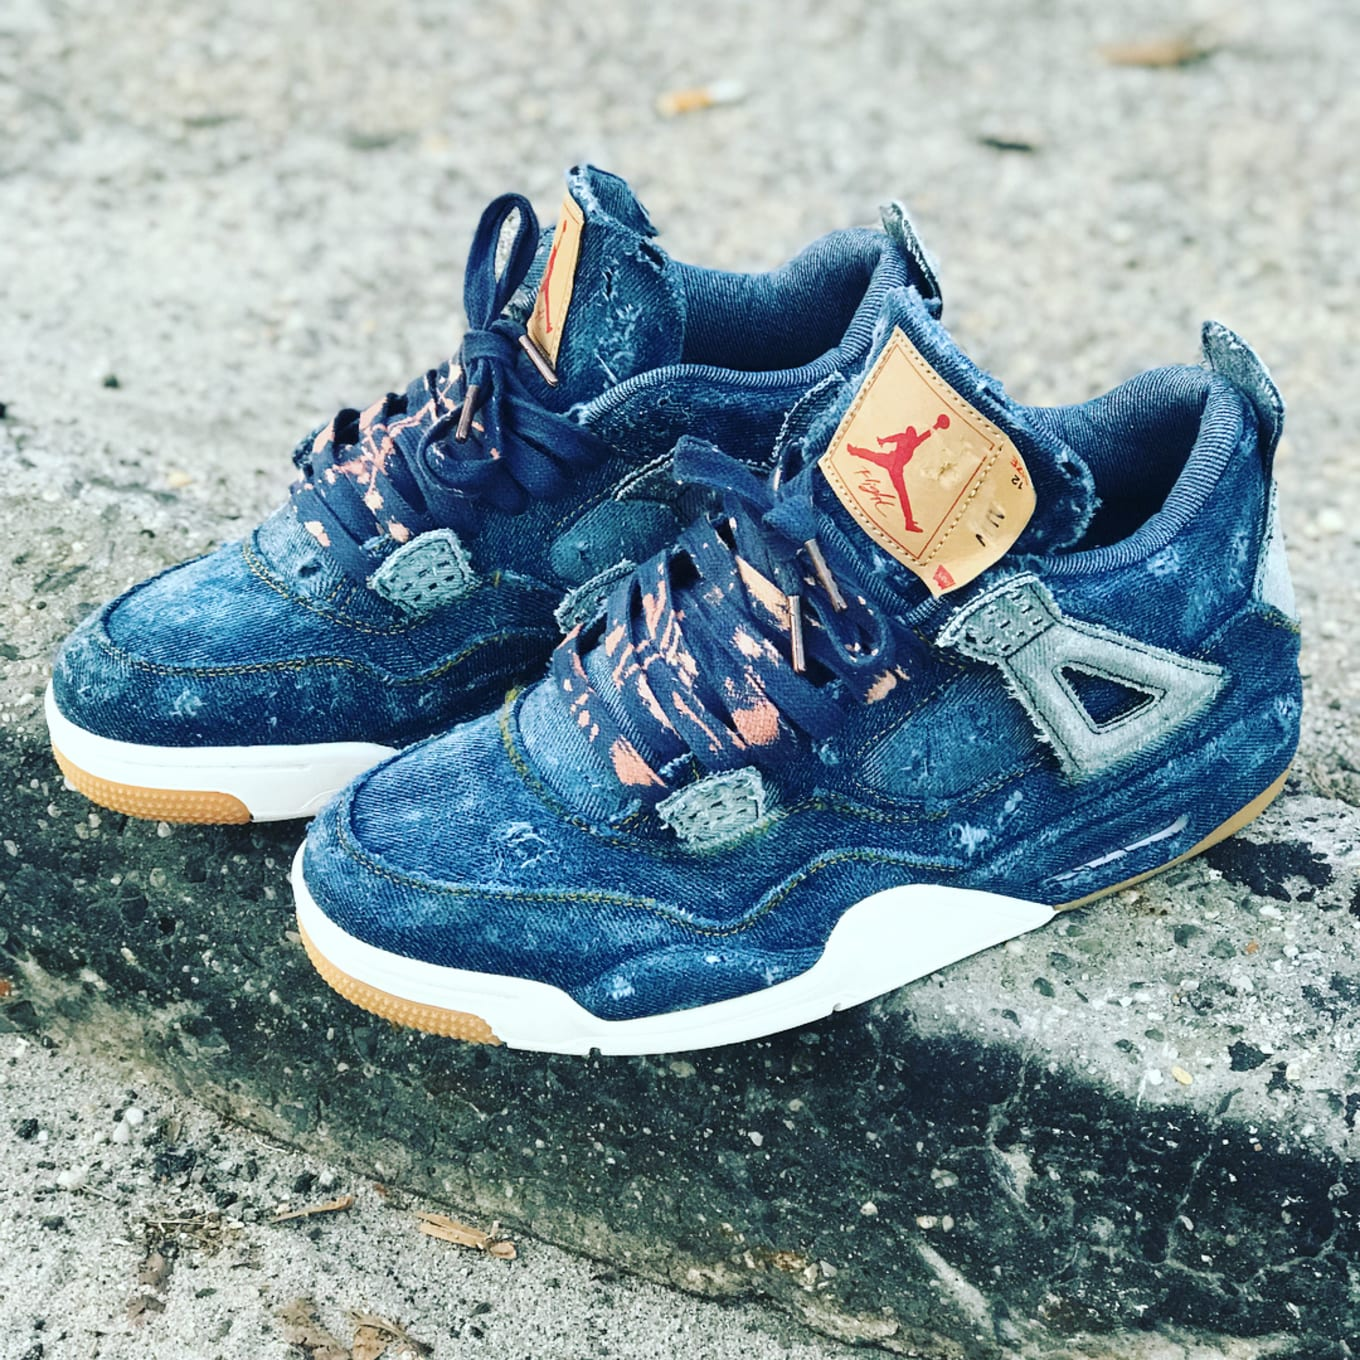 9e60b719c0941b 15.  Distressed   Bleached Laces  by Andres Munoz